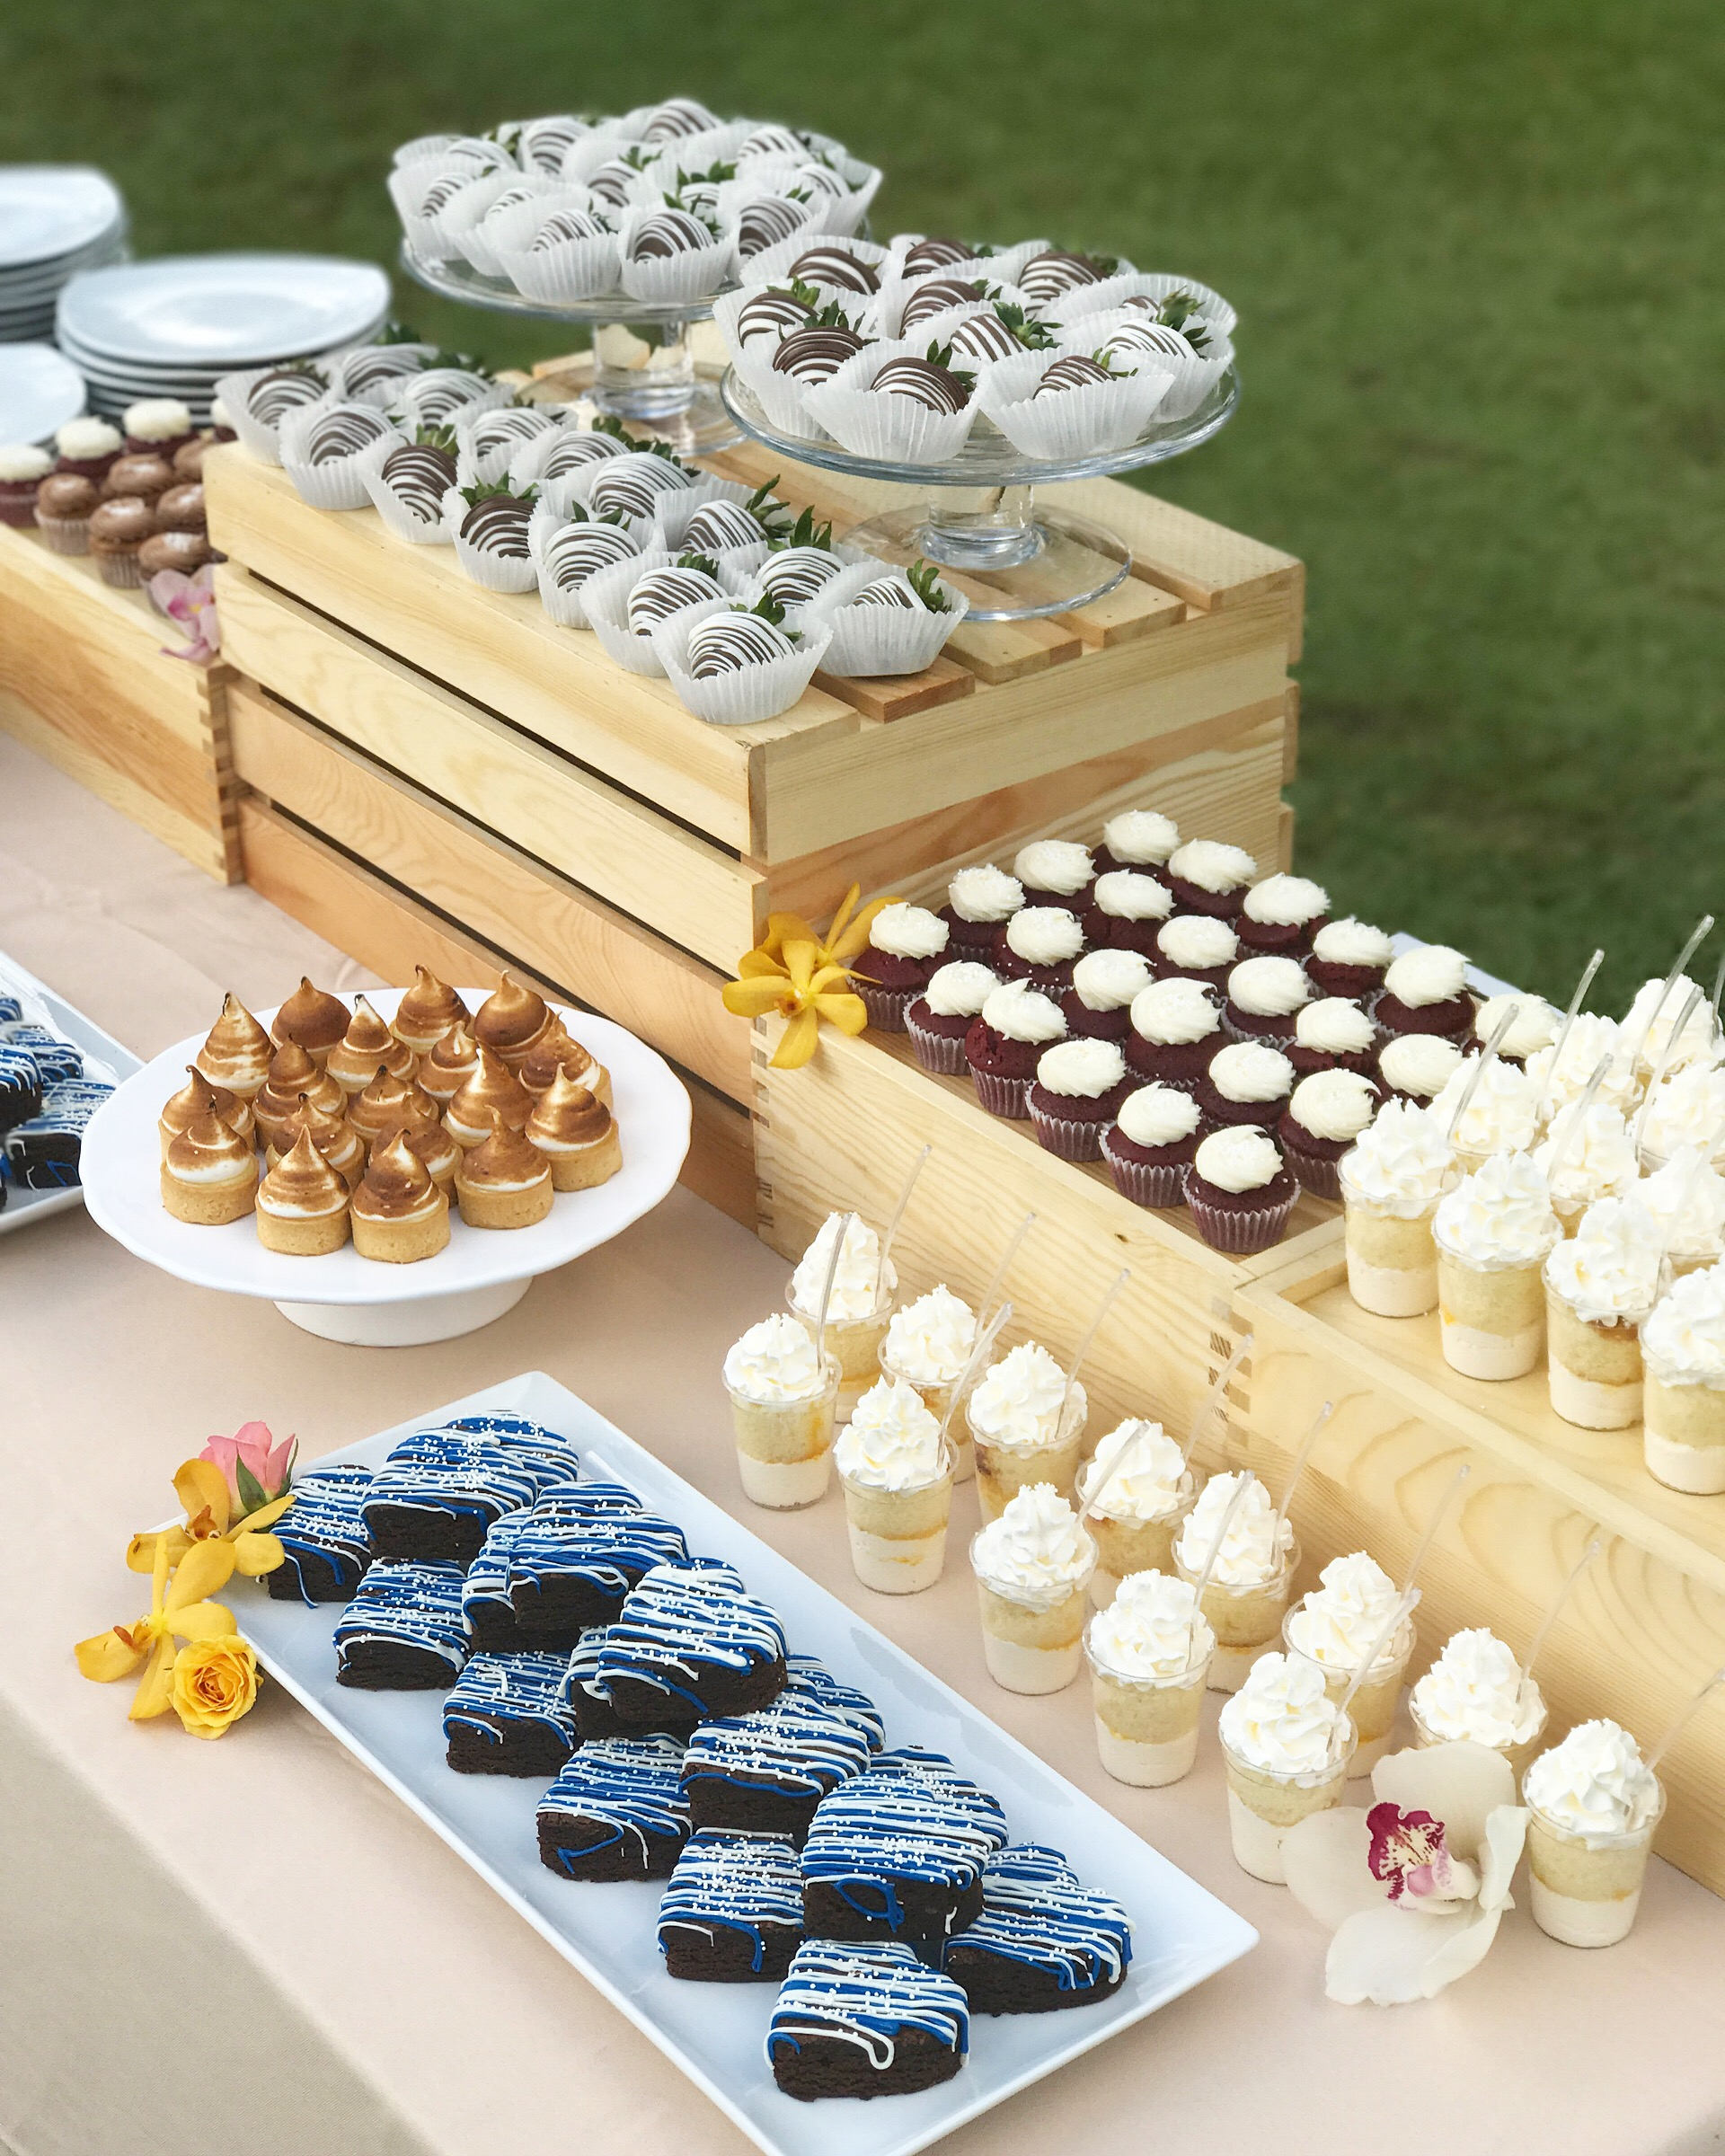 Wedding Dessert Table: Mini Desserts